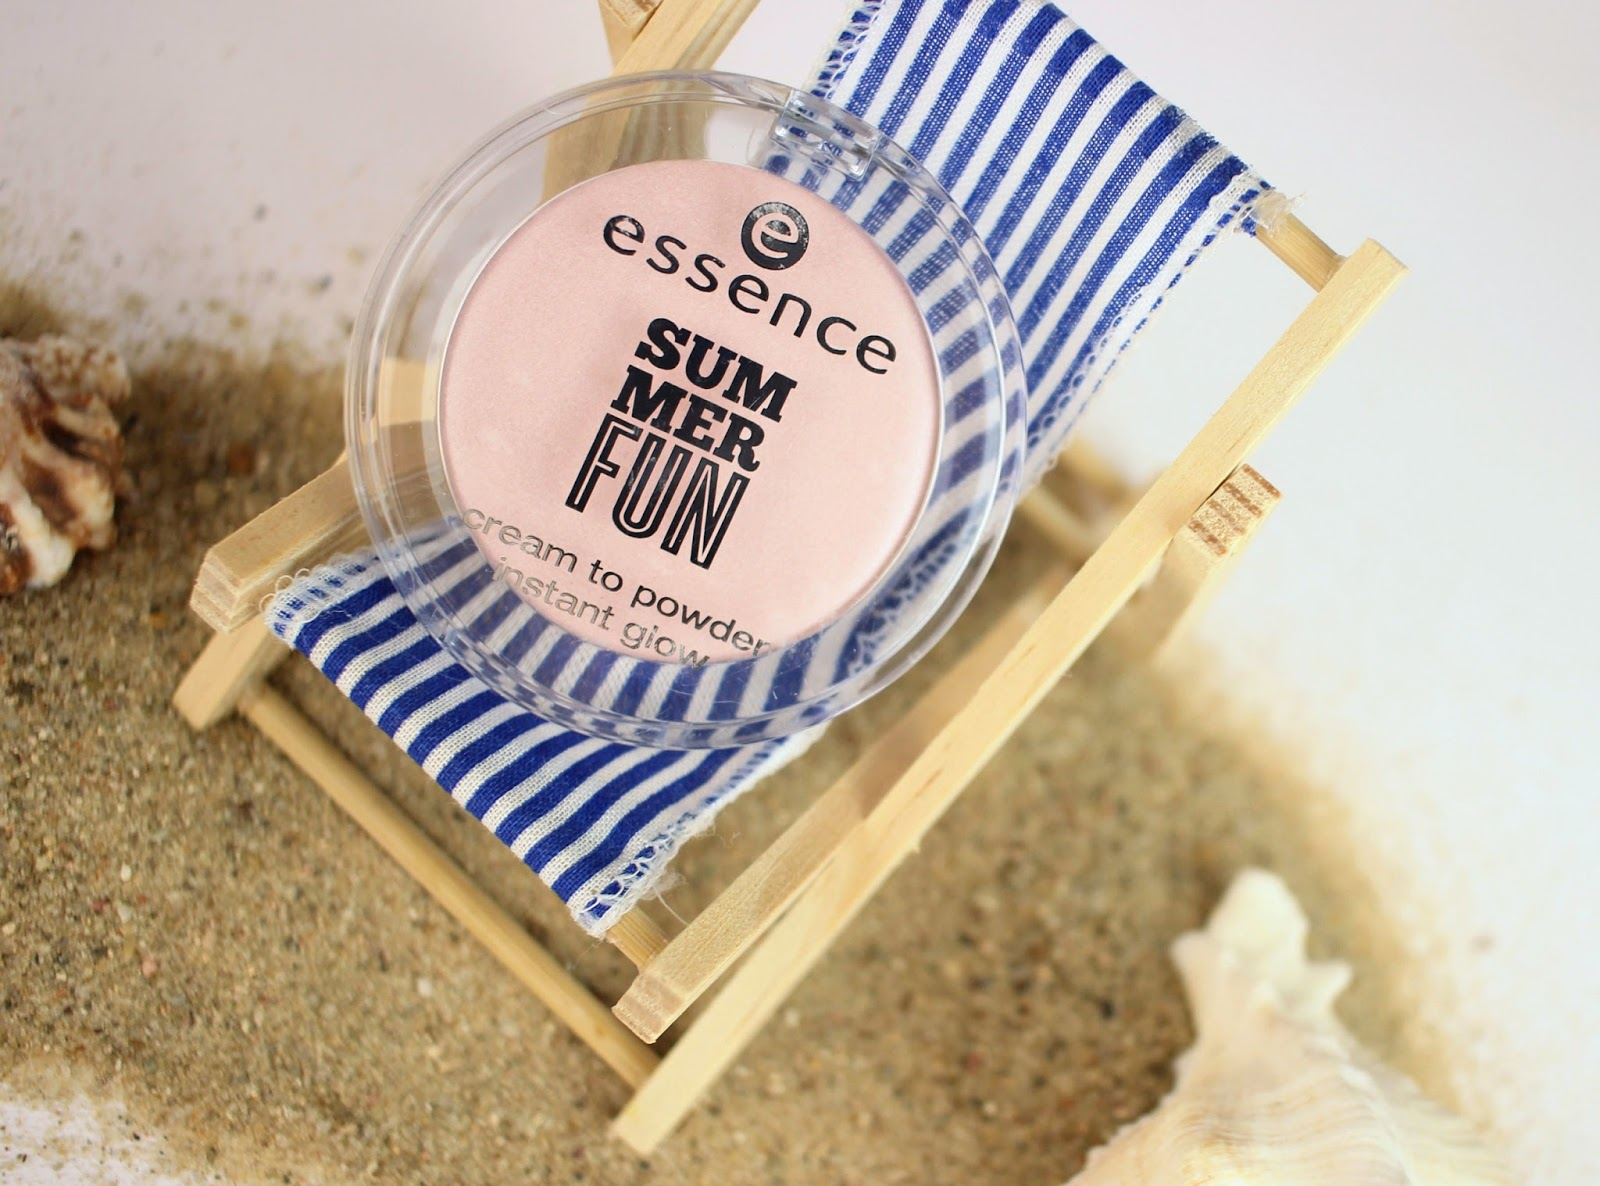 http://www.zaphiraw.de/2016/08/essence-summer-fun-limited-edition.html